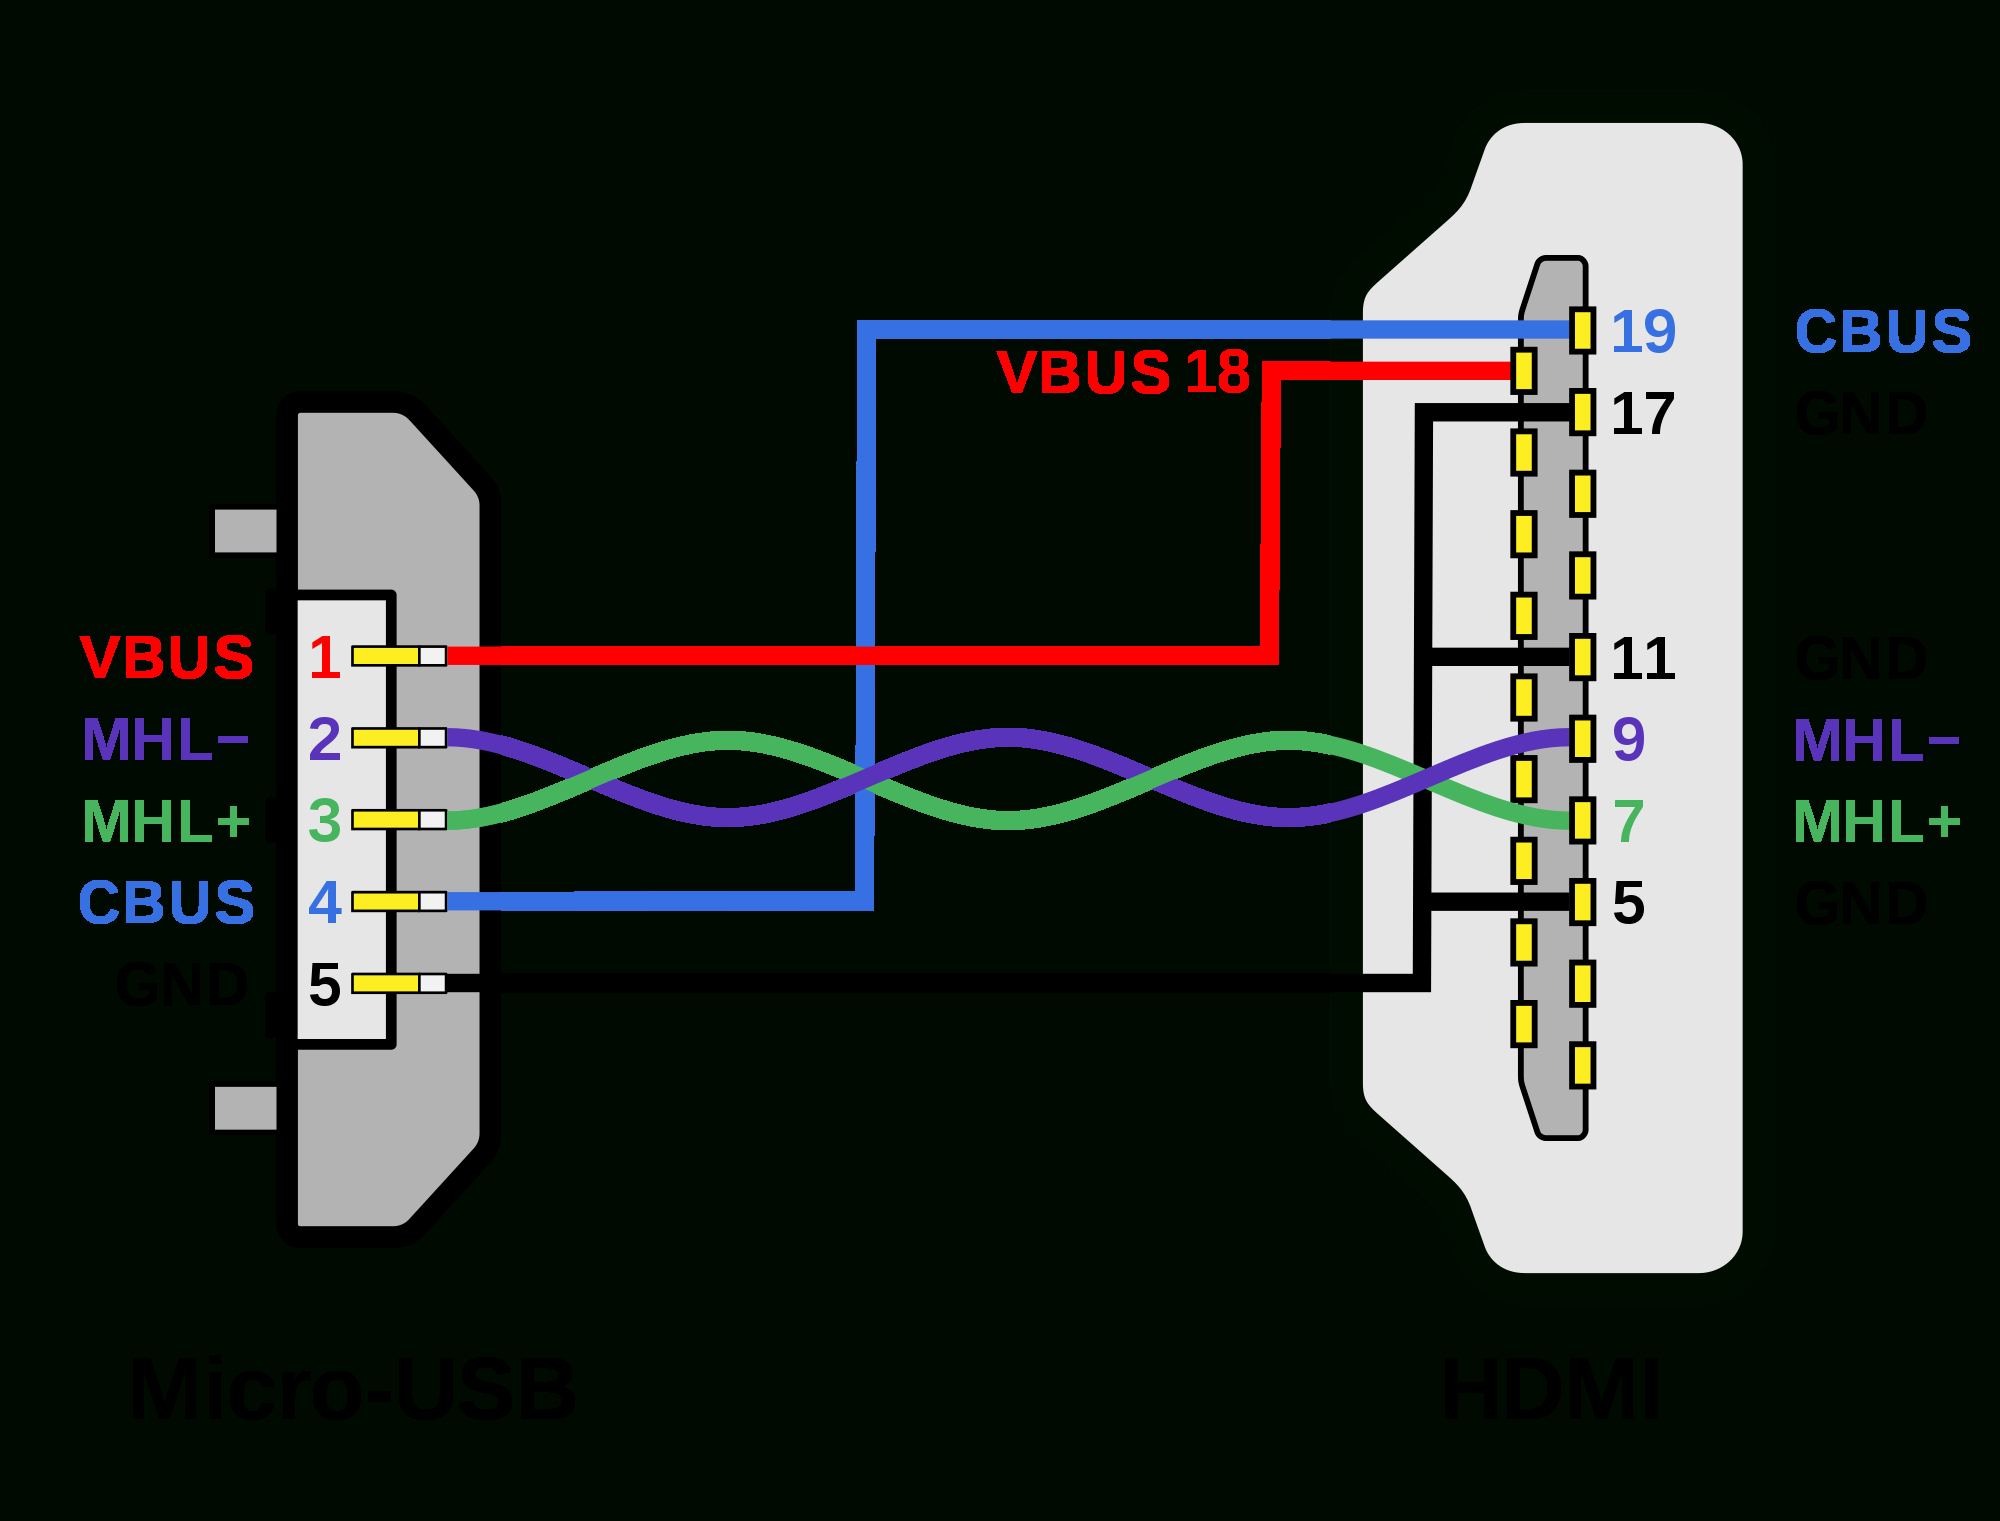 Wiring Schematic For Usb To Vga Adapter | Wiring Diagram - Wiring Diagram For Usb To Vga